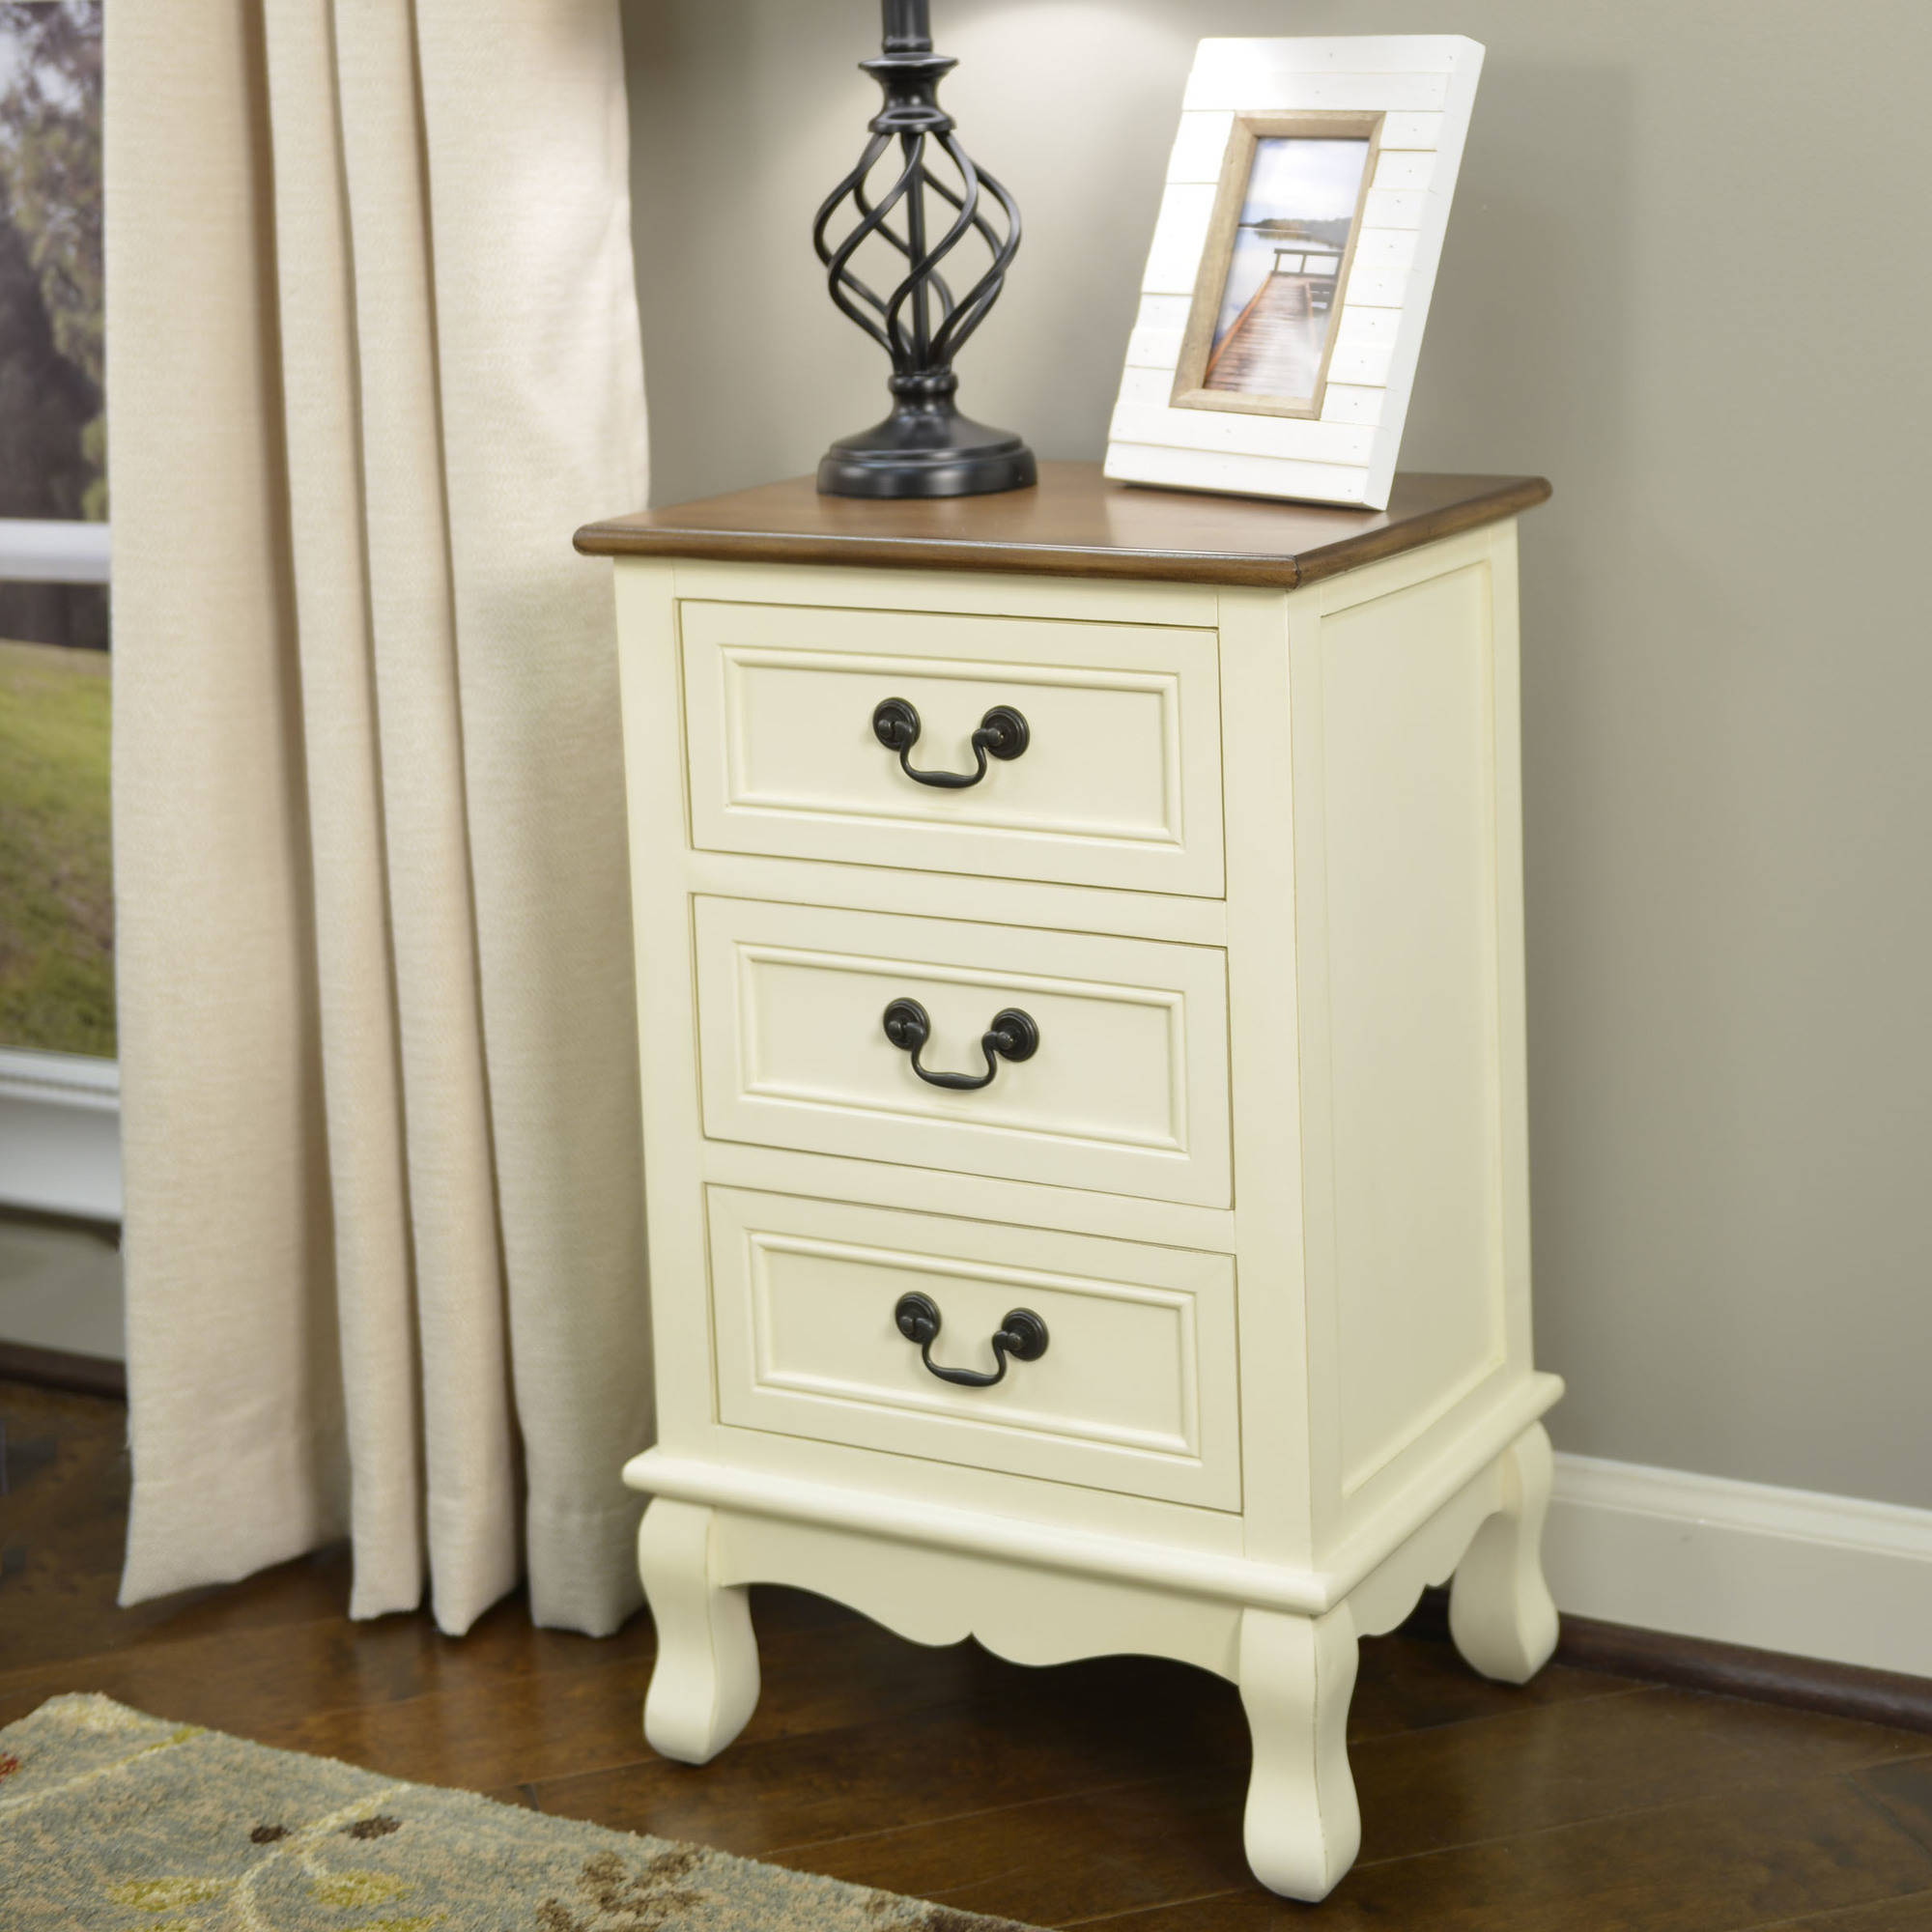 better homes and gardens two tone drawer accent table multiple end with drawers colors kohls jewelry coupon badcock furniture locations small side target dog crates lockable three